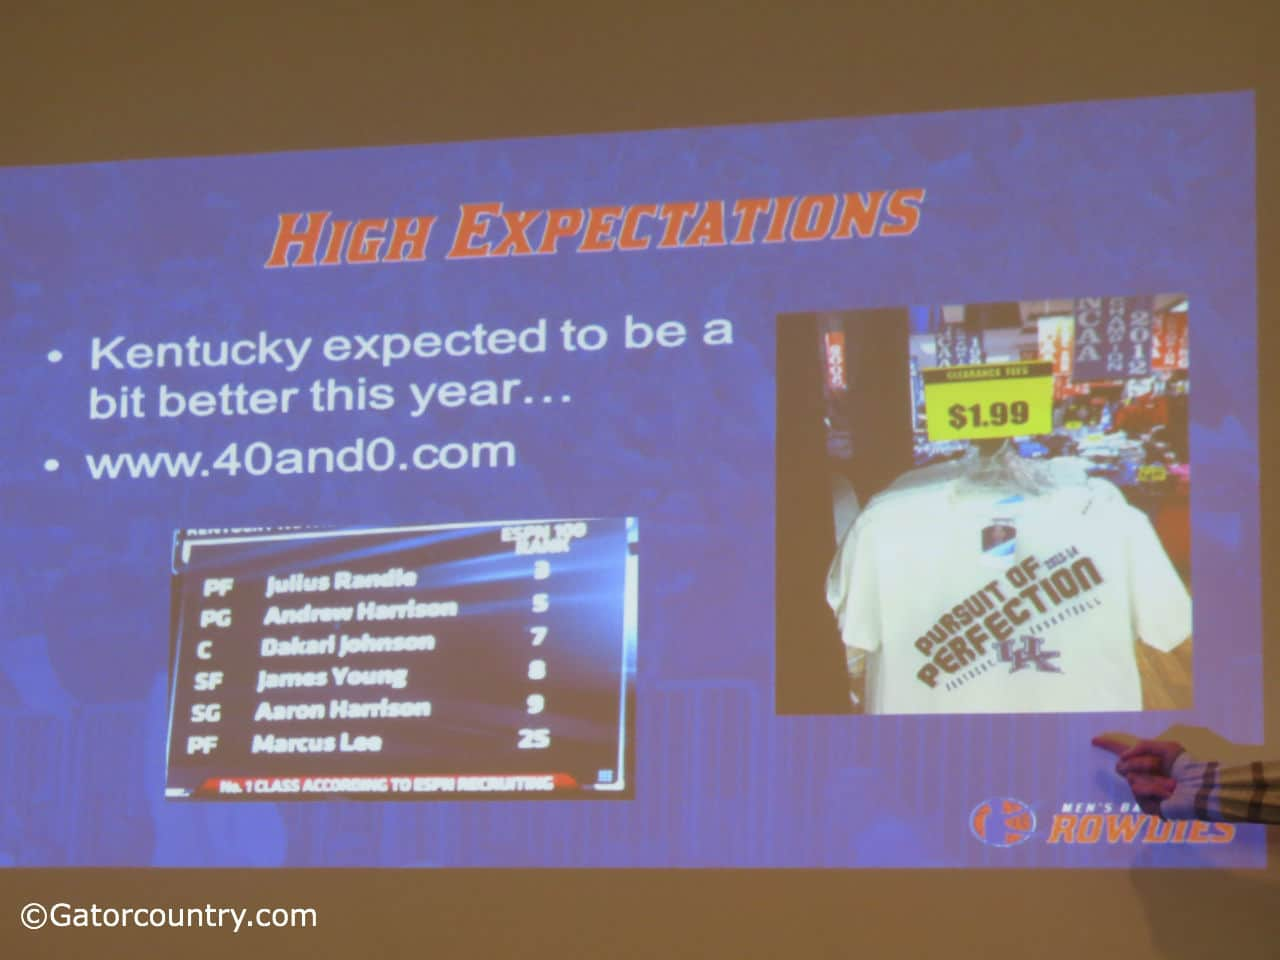 Research and Development chair Ben Rosenthal shows some of the dirt on the Kentucky Wildcats